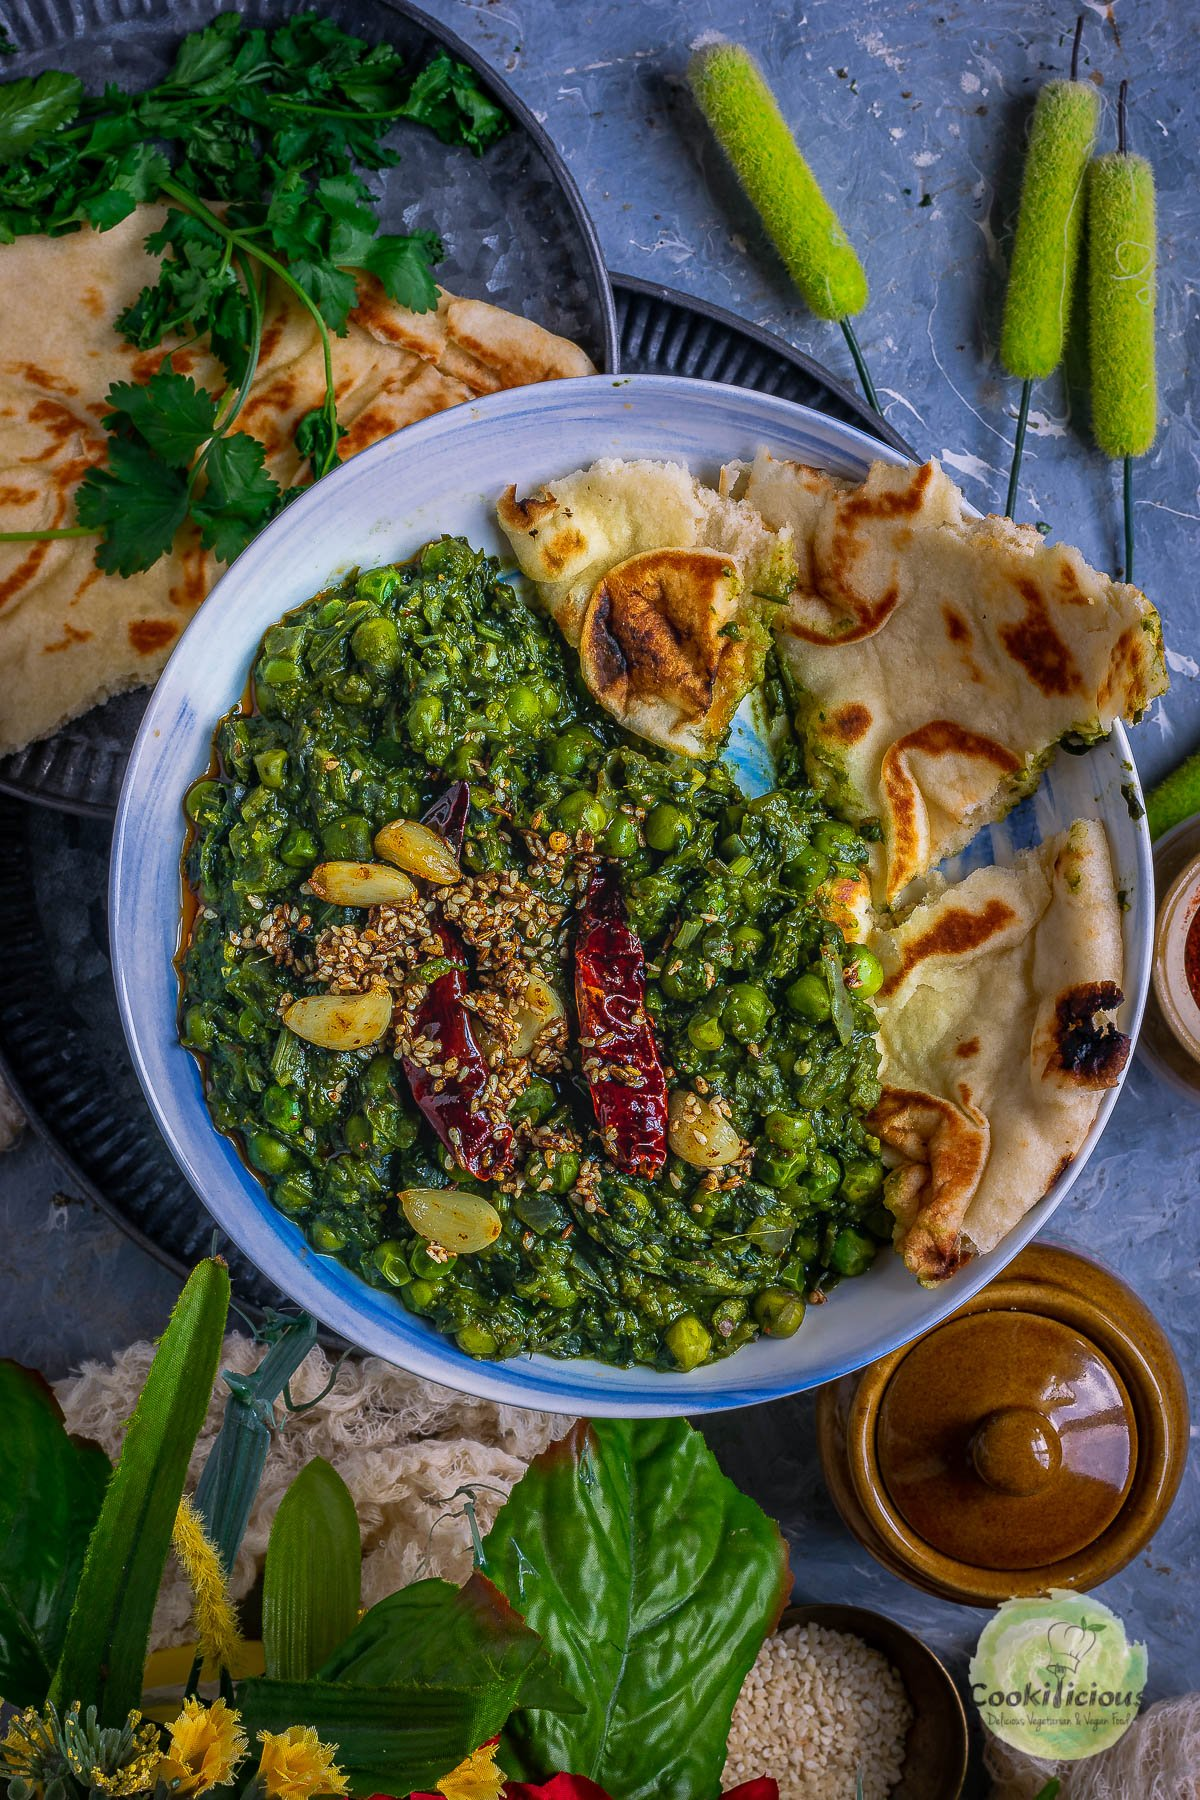 Garlicky Peas Spinach Fenugreek Curry with naan pieces in a round bowl